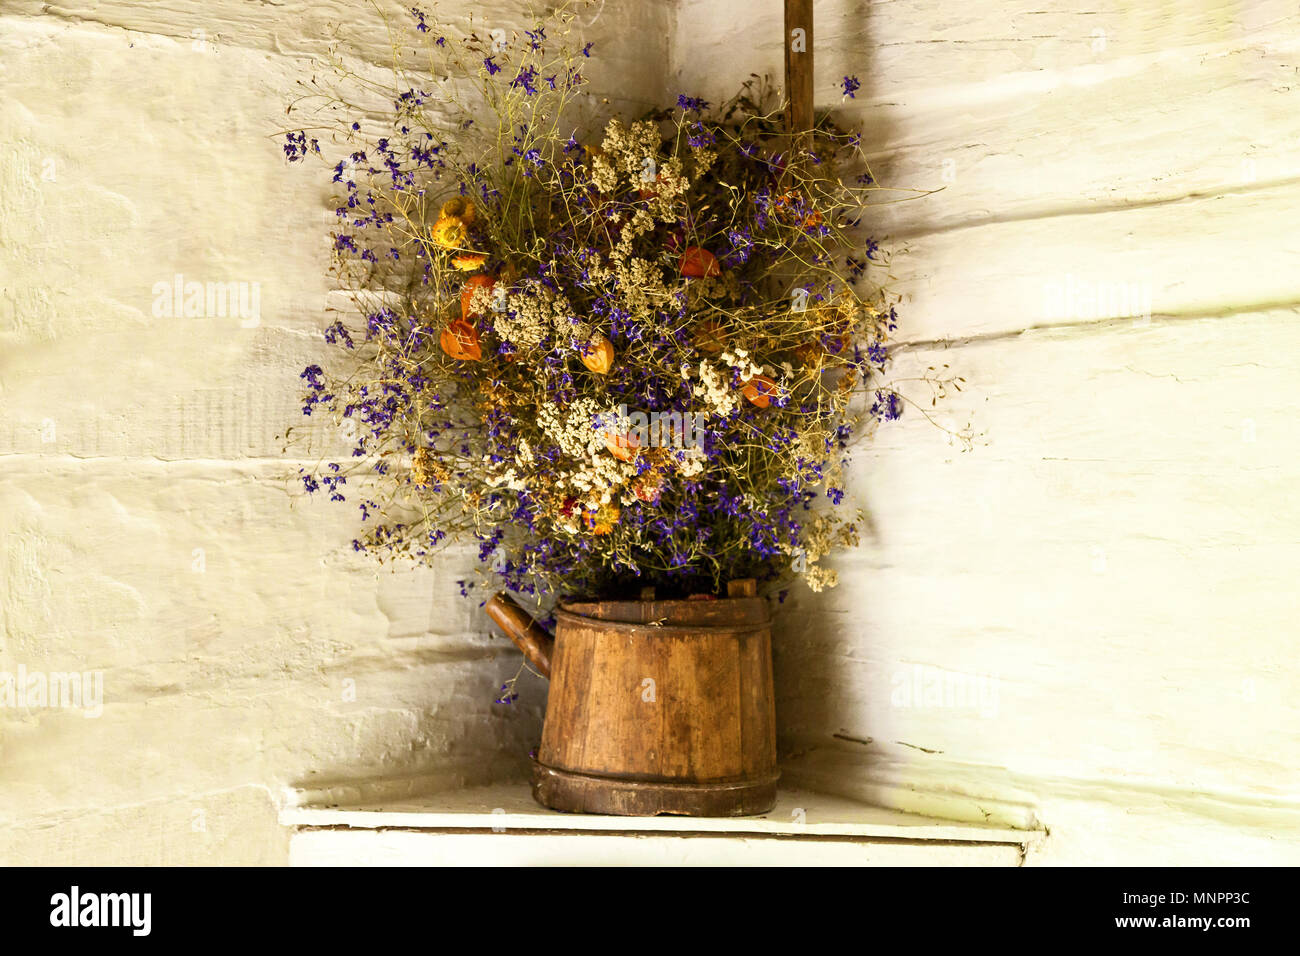 Still life of dried flowers on white wall background bouquet of still life of dried flowers on white wall background bouquet of wild flowers in niche of old stone walluquet of dry wild flowers in a pot mightylinksfo